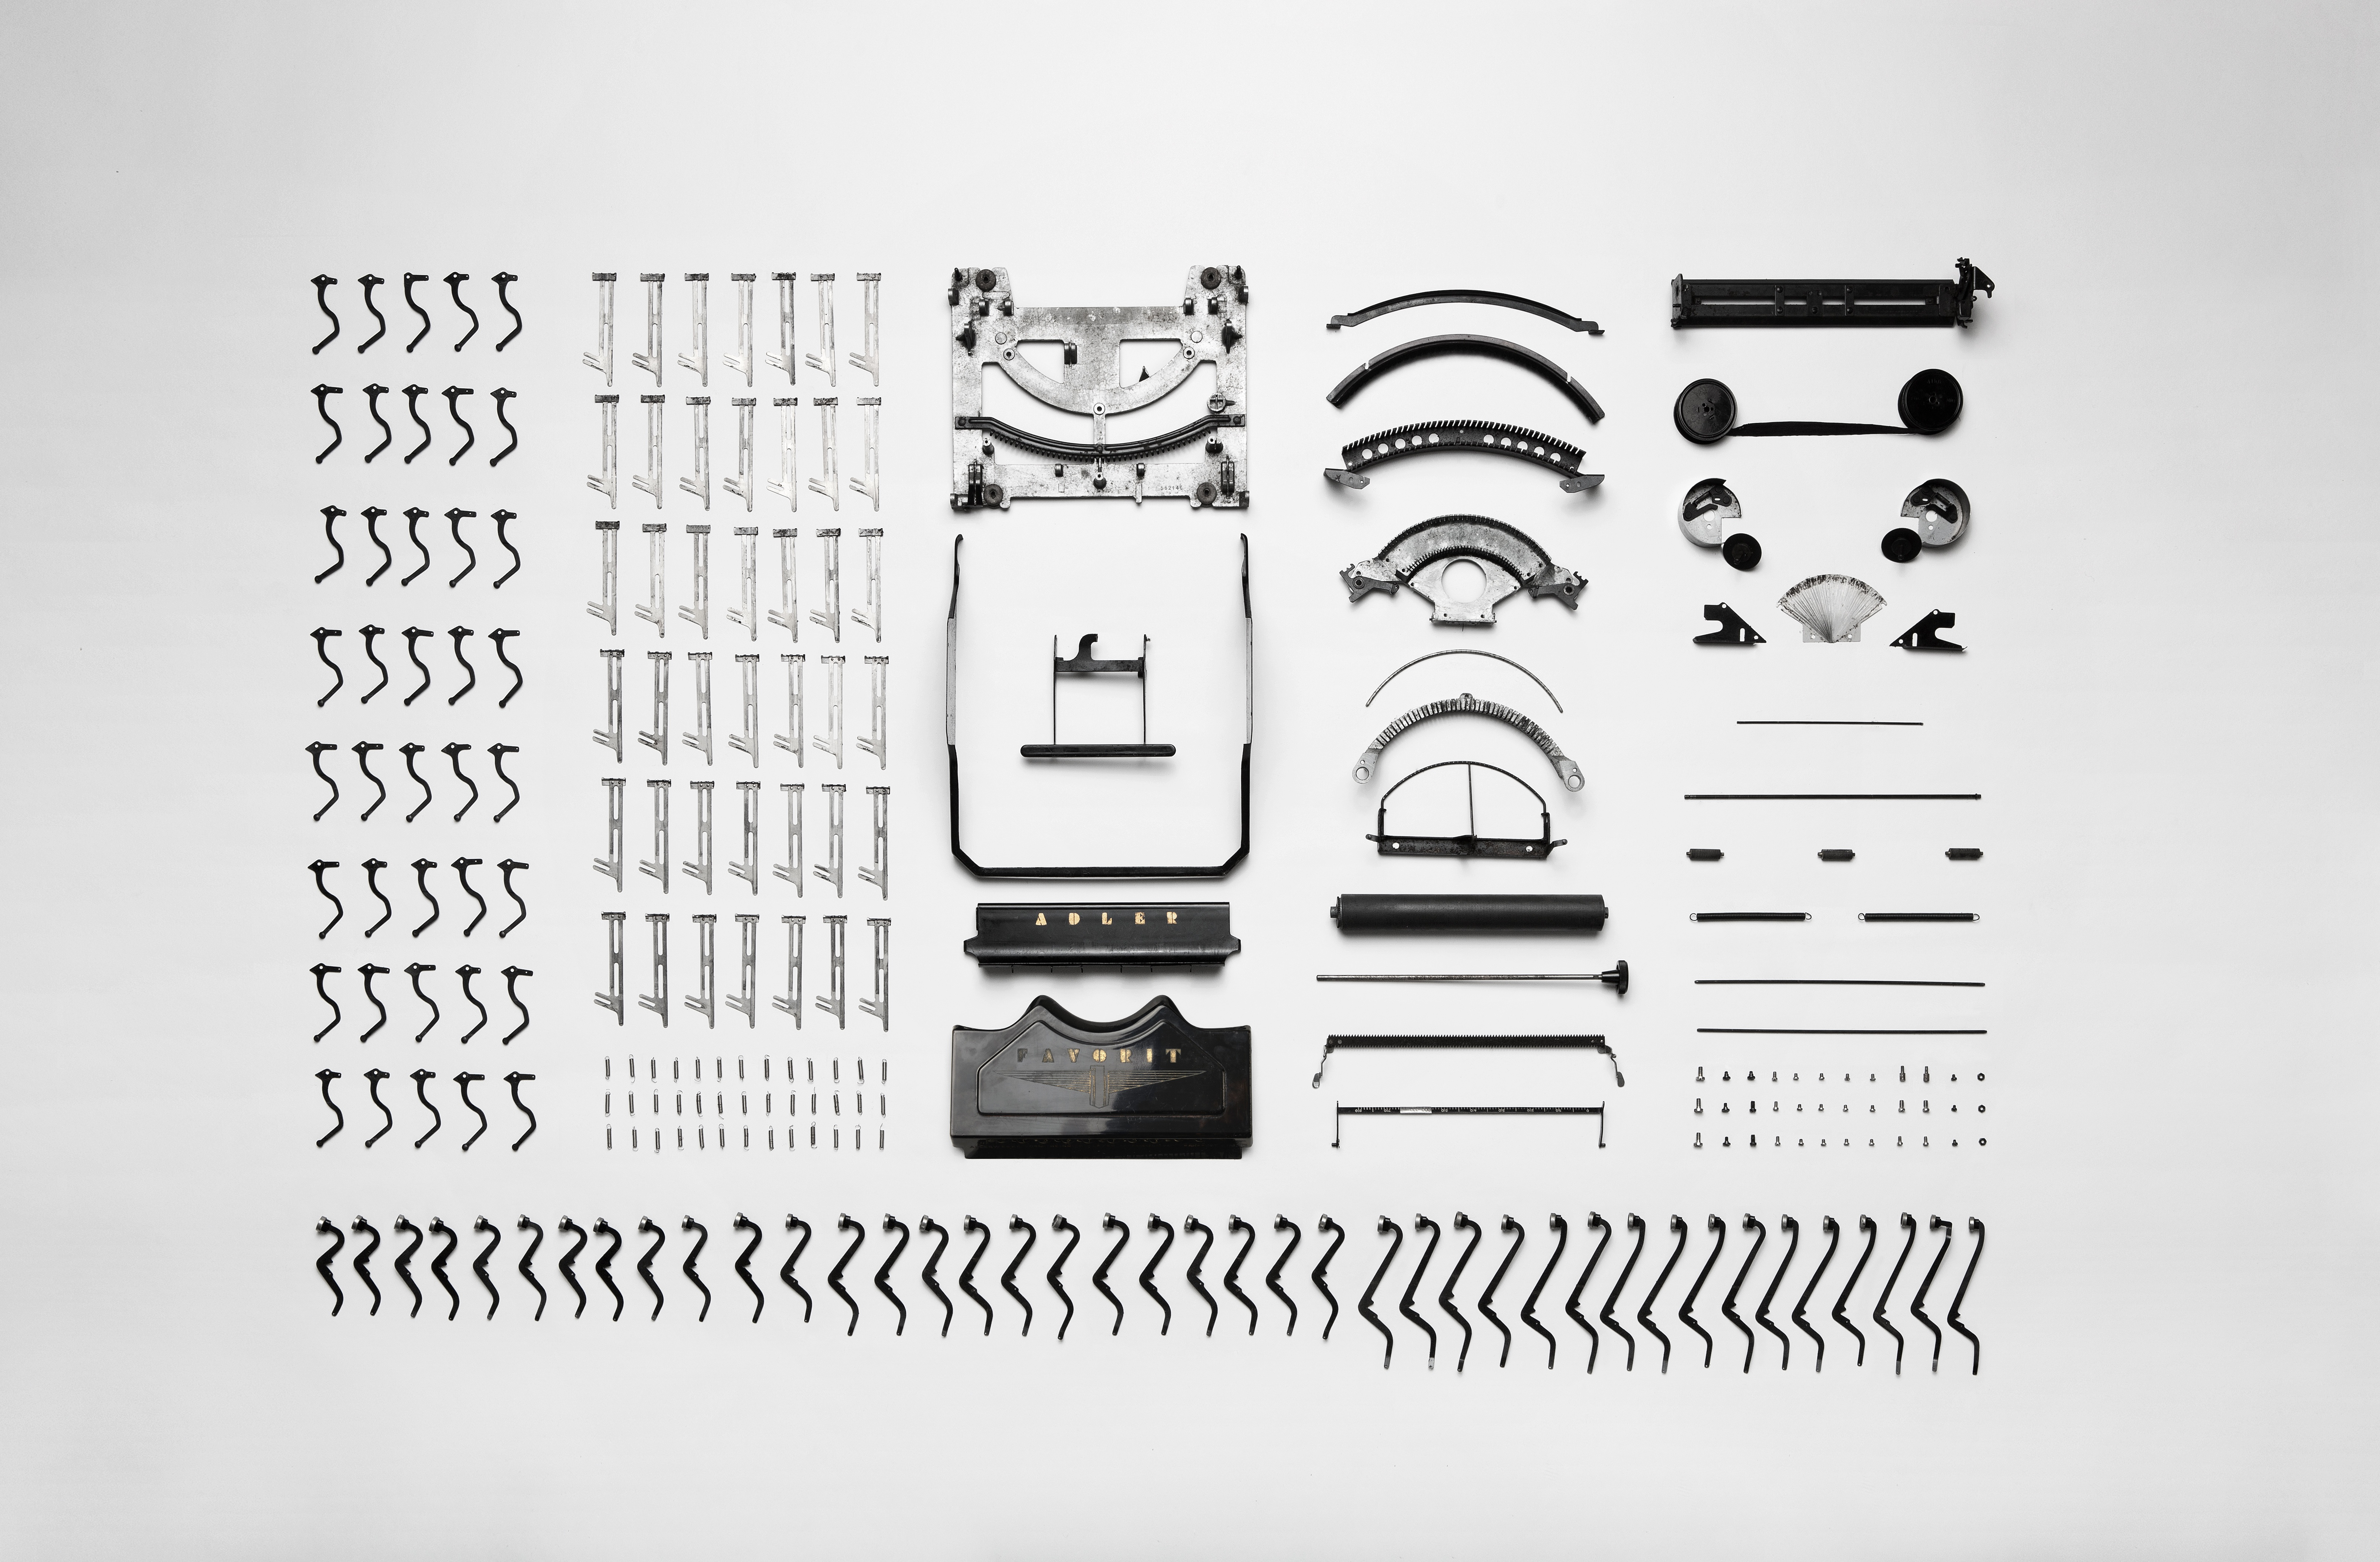 black-and-white-technology-part-typewriter-deconstruct-dismantled-175-pxhere.com